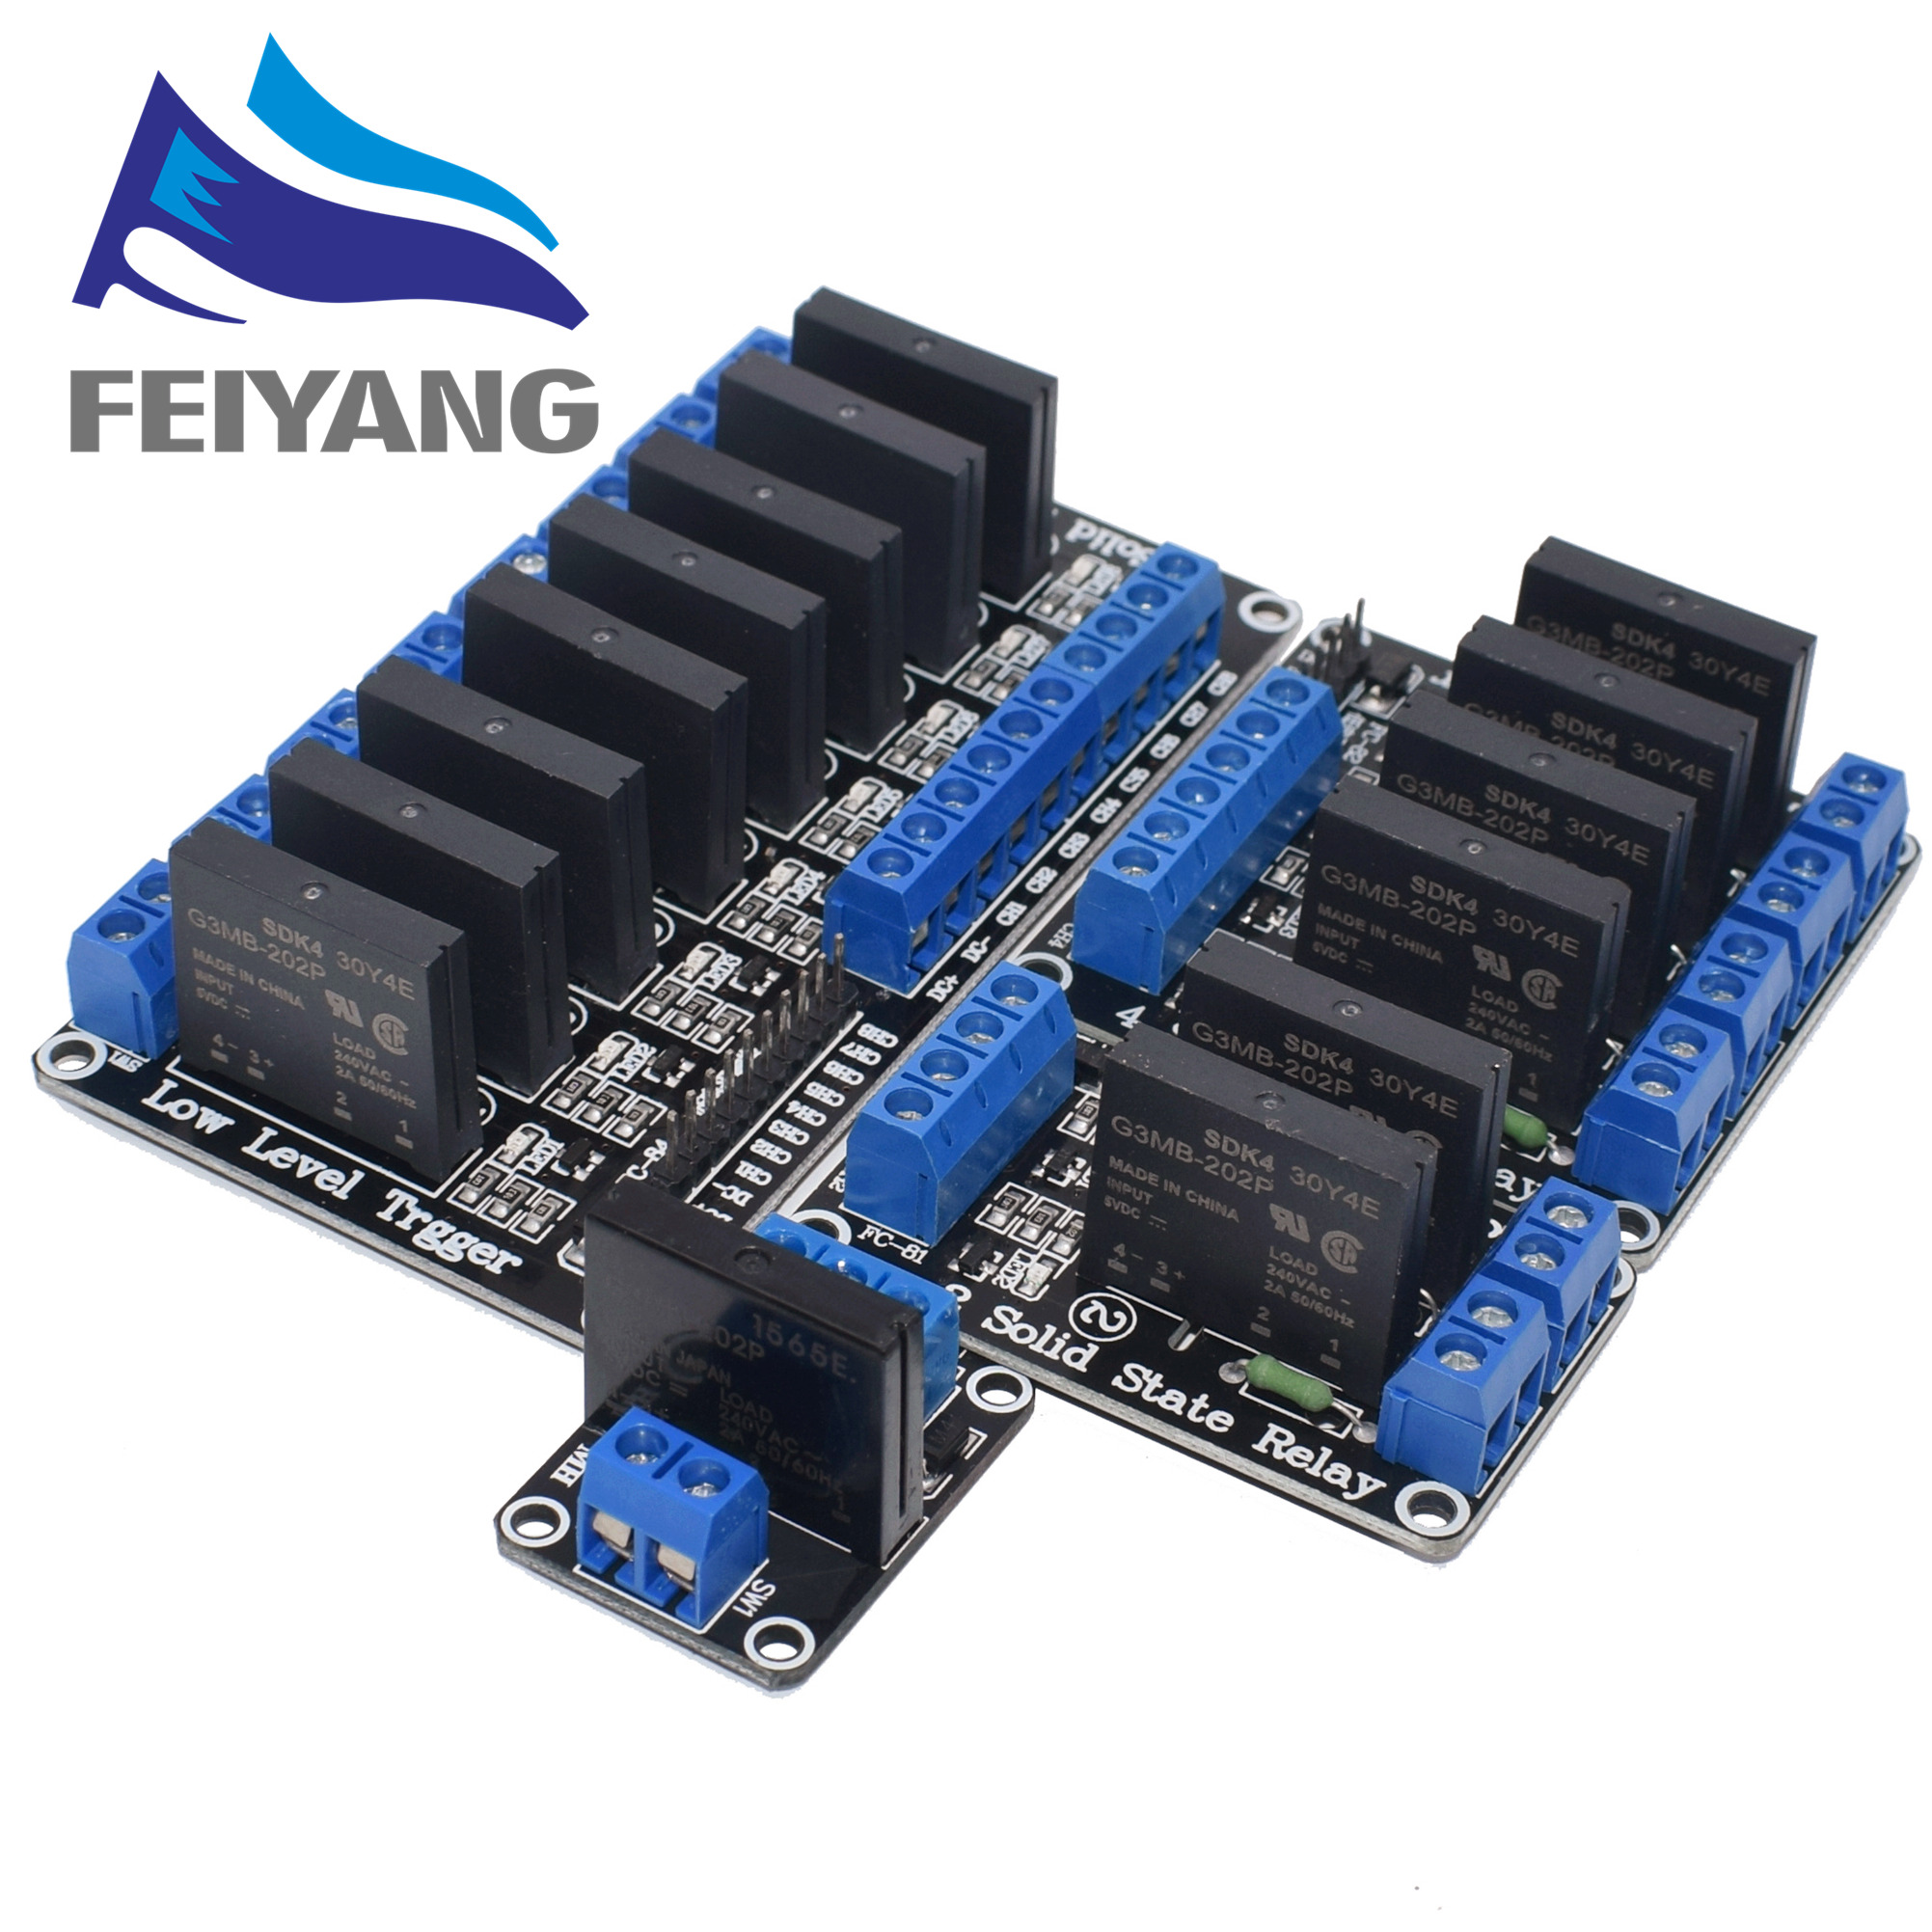 5V 1 2 4 8 Channel SSR G3MB-202P Solid State Relay Module 240V 2A Output With Resistive Fuse For ARDUINO Diy Kit